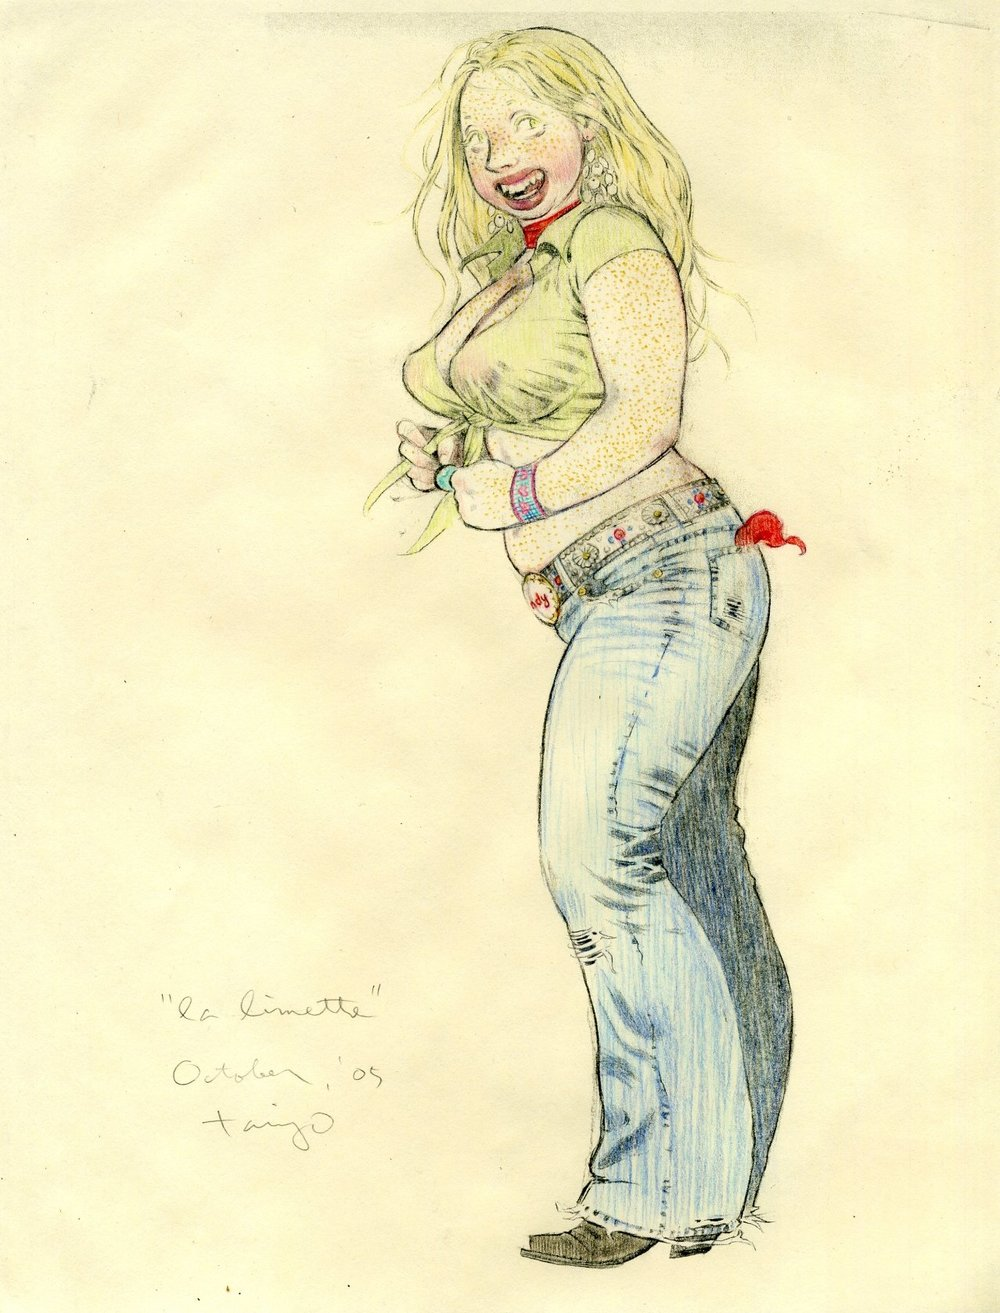 Limette, la, 2005, colored pencil on photocopy of pencil on paper, 10 x 7 inches, courtesy of Ray Griffin and Thom Robinson